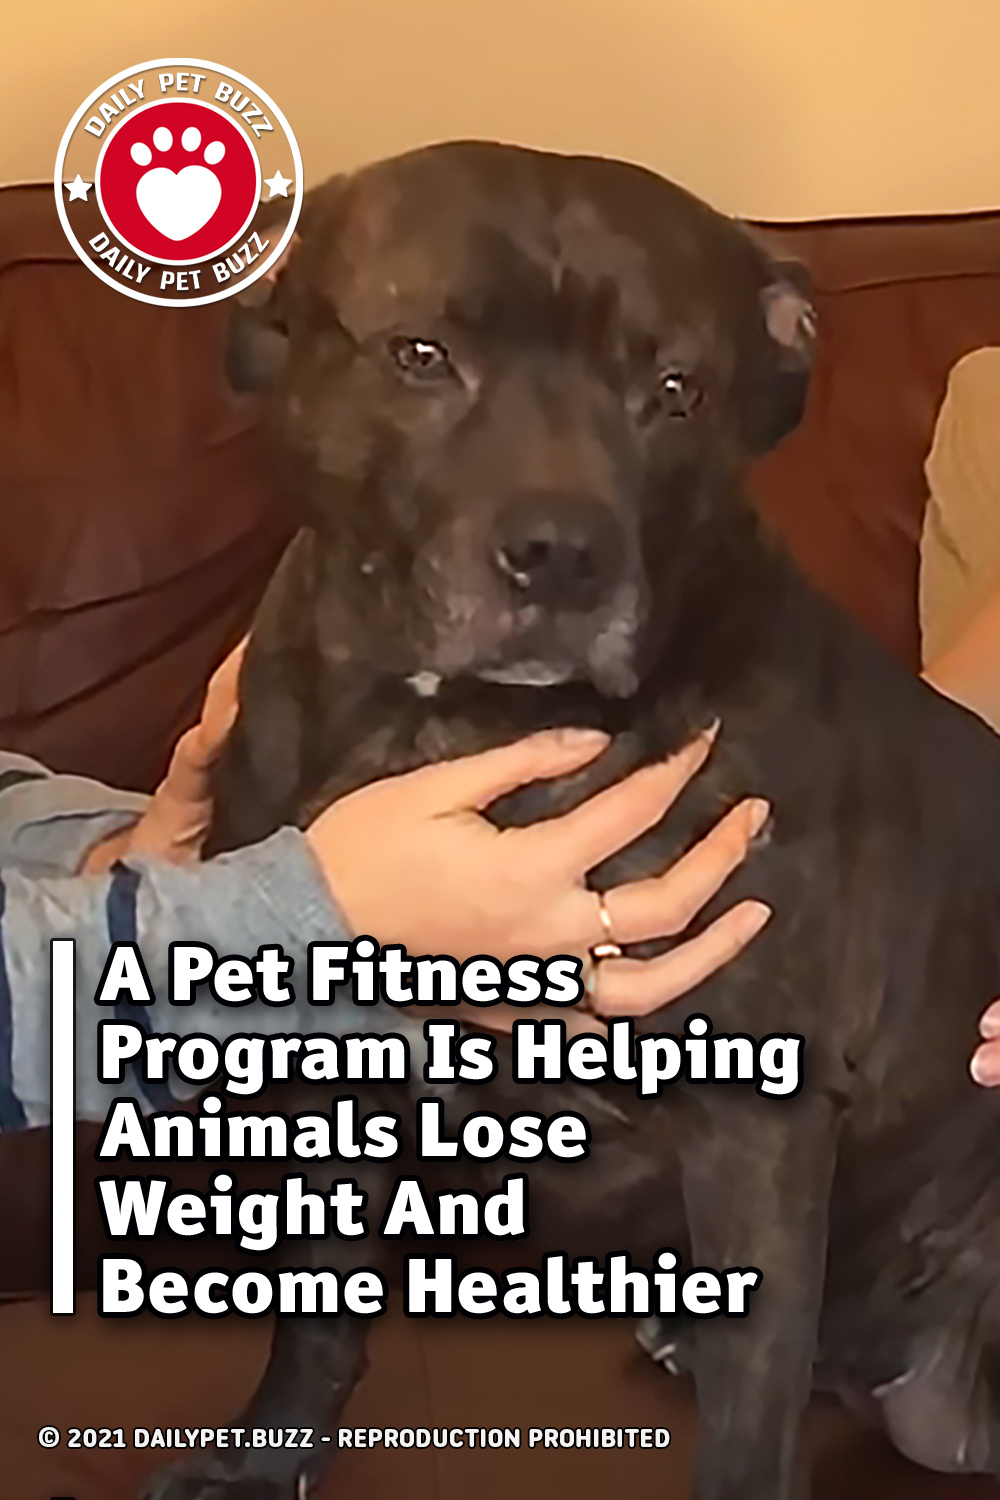 A Pet Fitness Program Is Helping Animals Lose Weight And Become Healthier